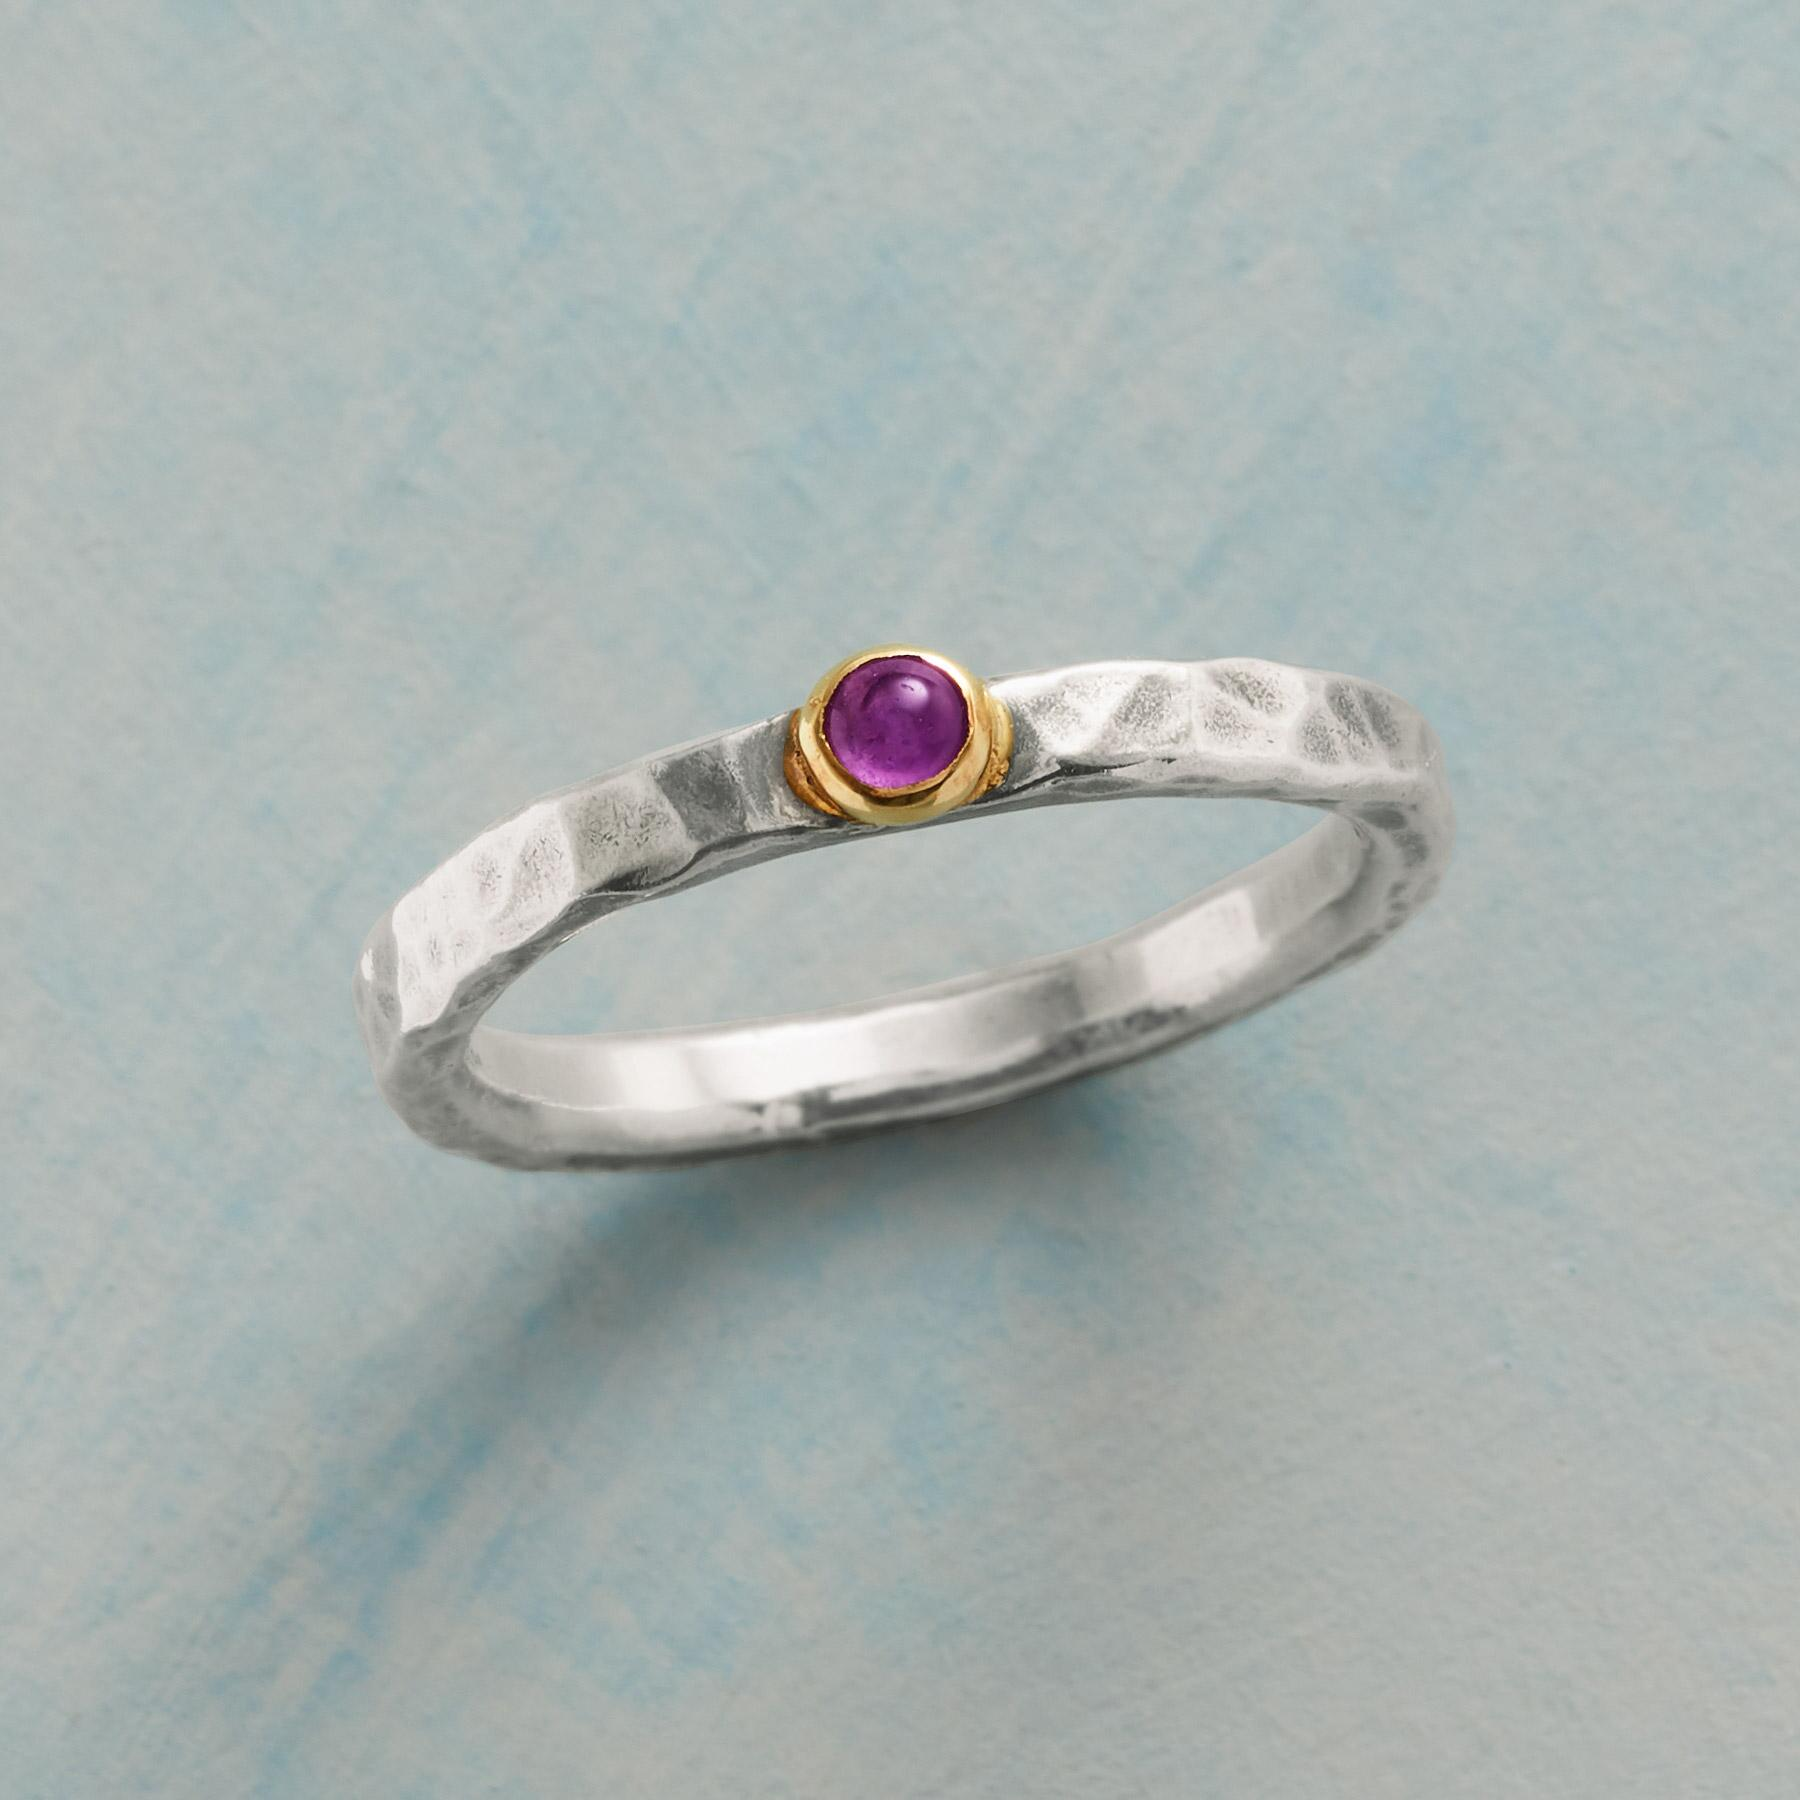 Silver, Gold, and Amethyst Ring